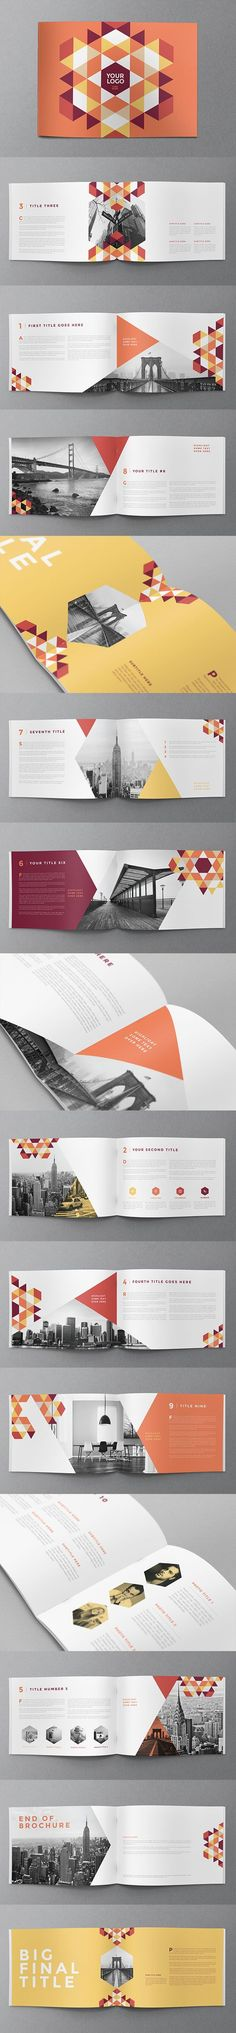 Modern Red Pattern Brochure. Download here: http://graphicriver.net/item/modern-red-pattern-brochure/11973823?ref=abradesign #brochure #design #layout: